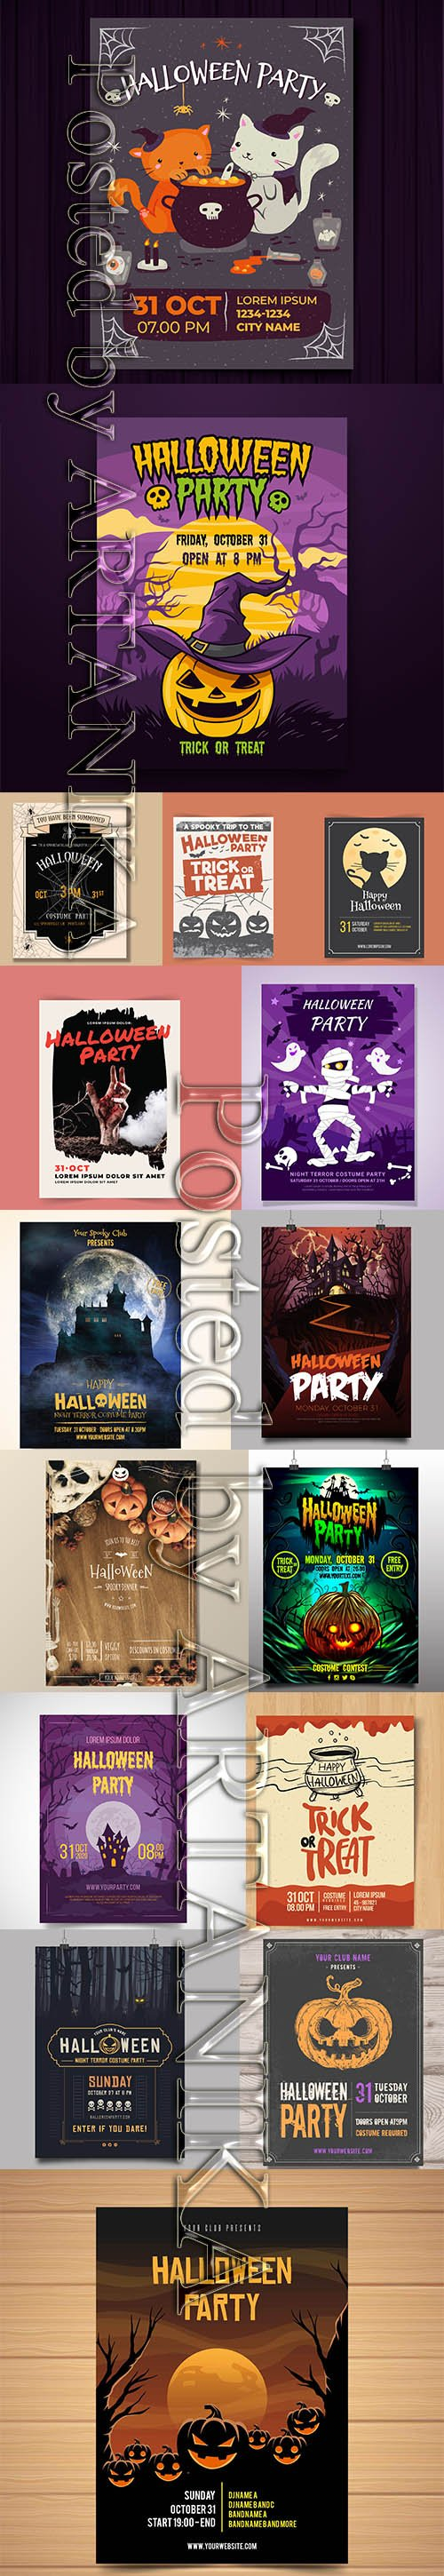 HALLOWEEN PARTY FLYERS AND POSTER PACK VOL 6